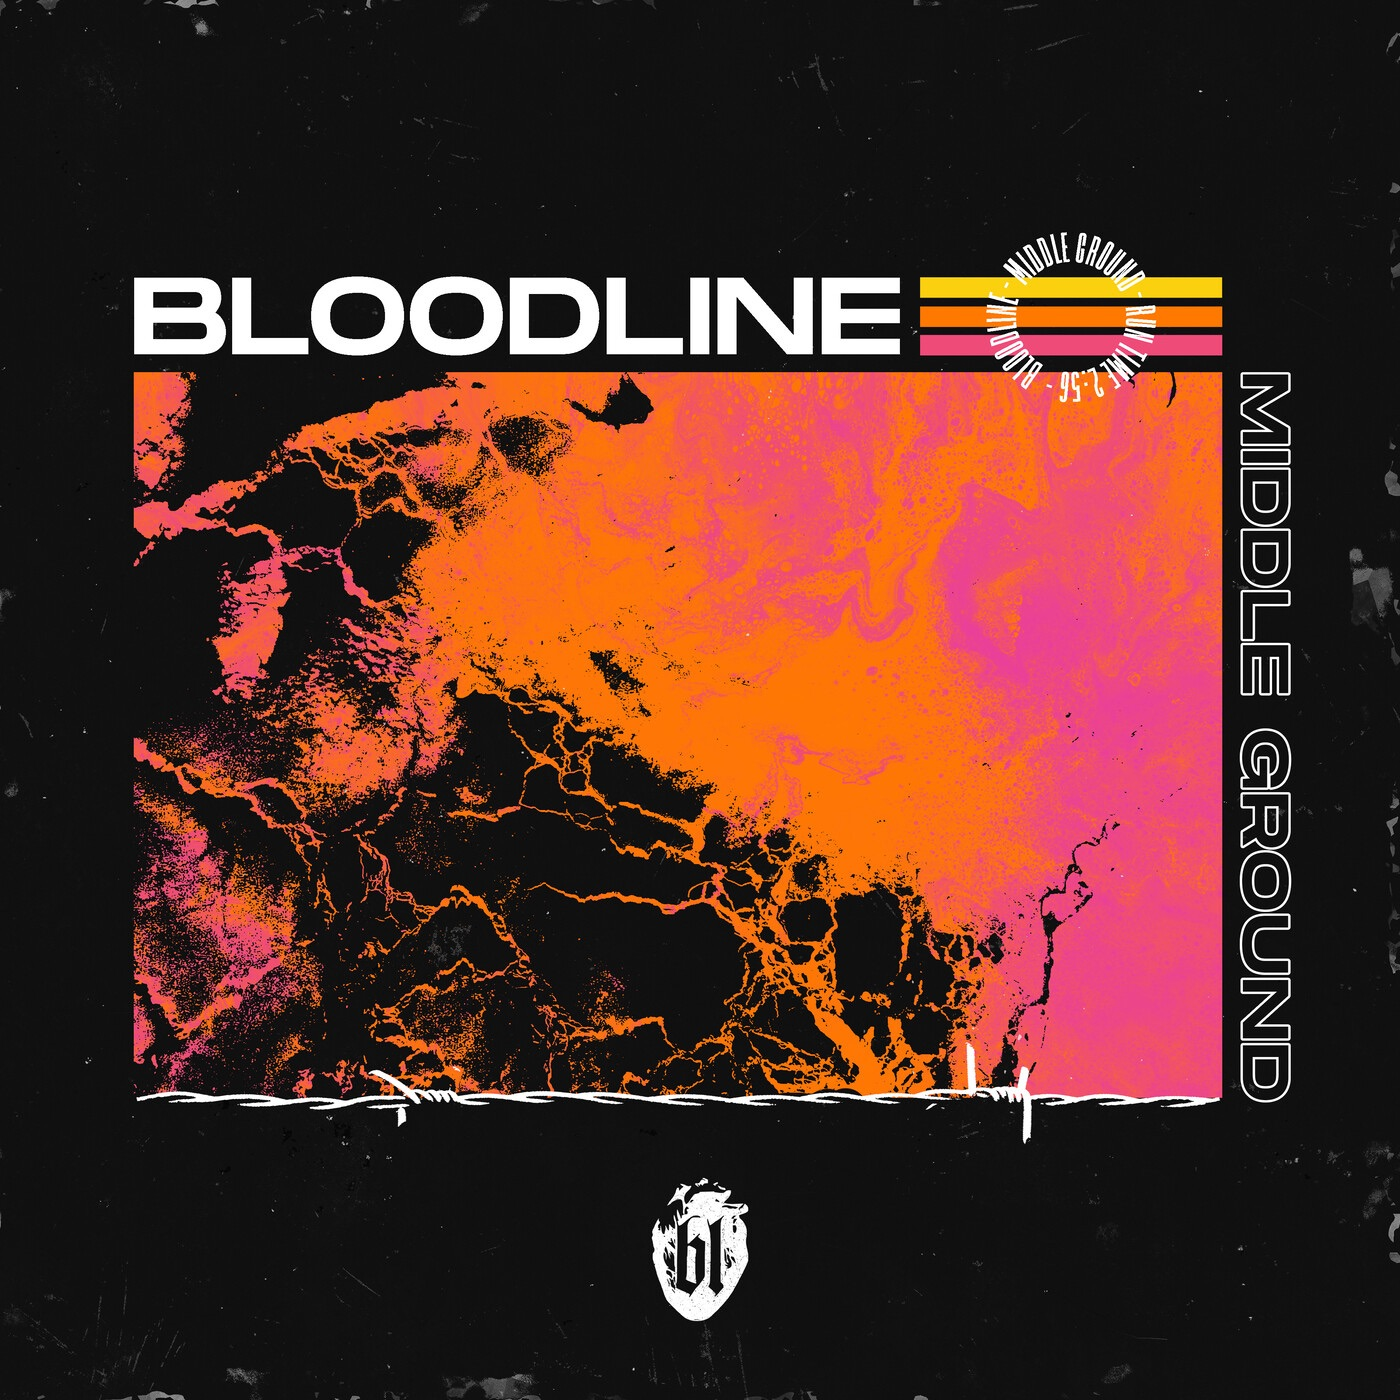 Bloodline - Middle Ground [single] (2019)